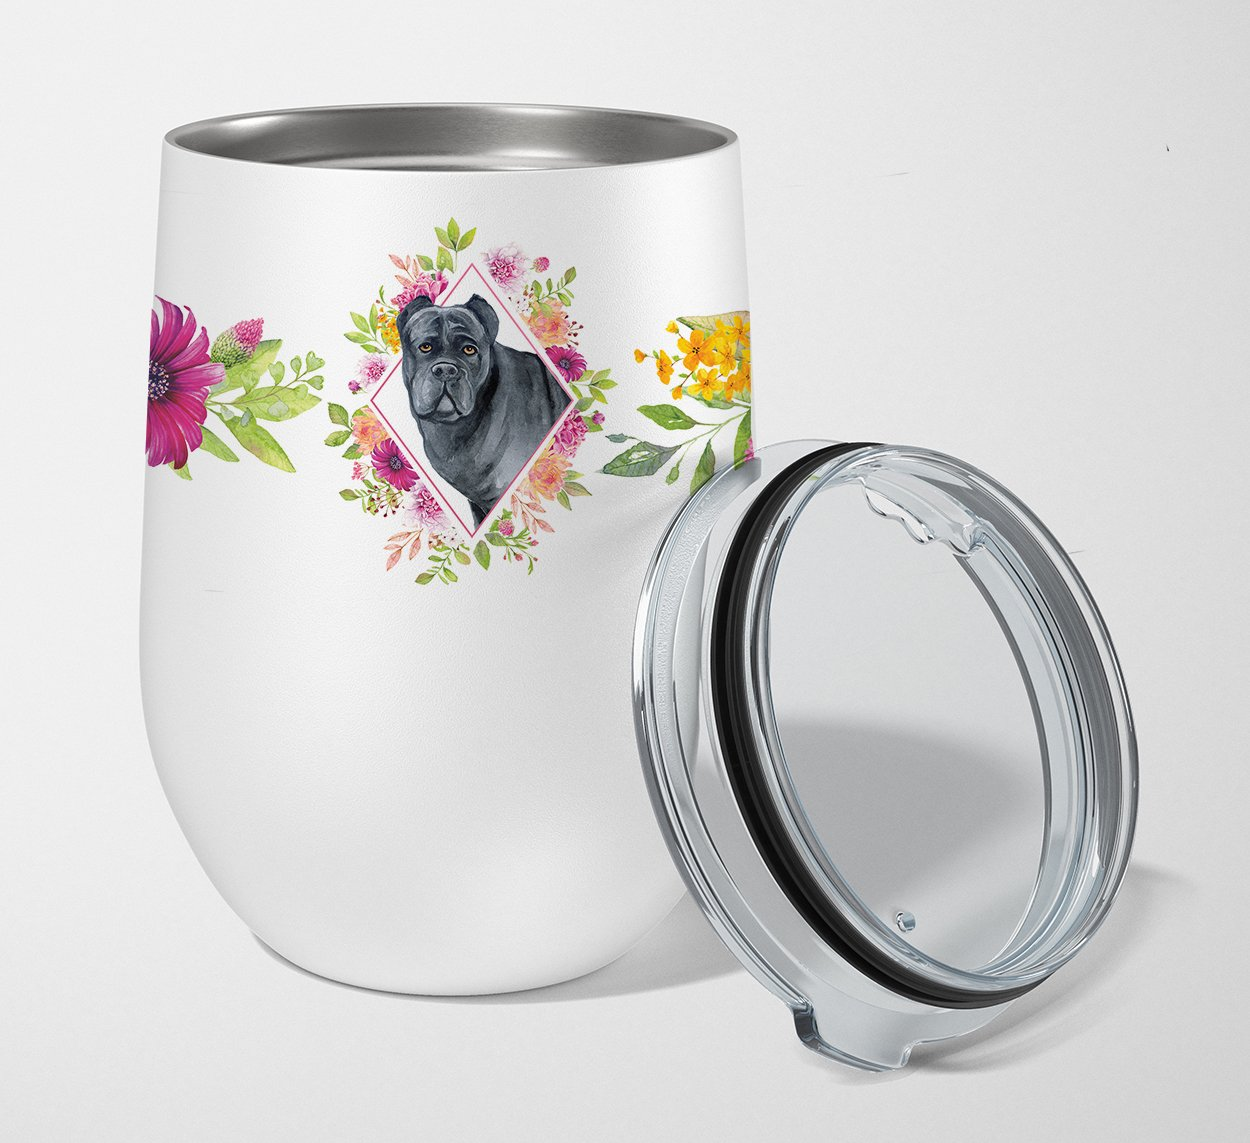 Cane Corso Pink Flowers Stainless Steel 12 oz Stemless Wine Glass CK4125TBL12 by Caroline's Treasures